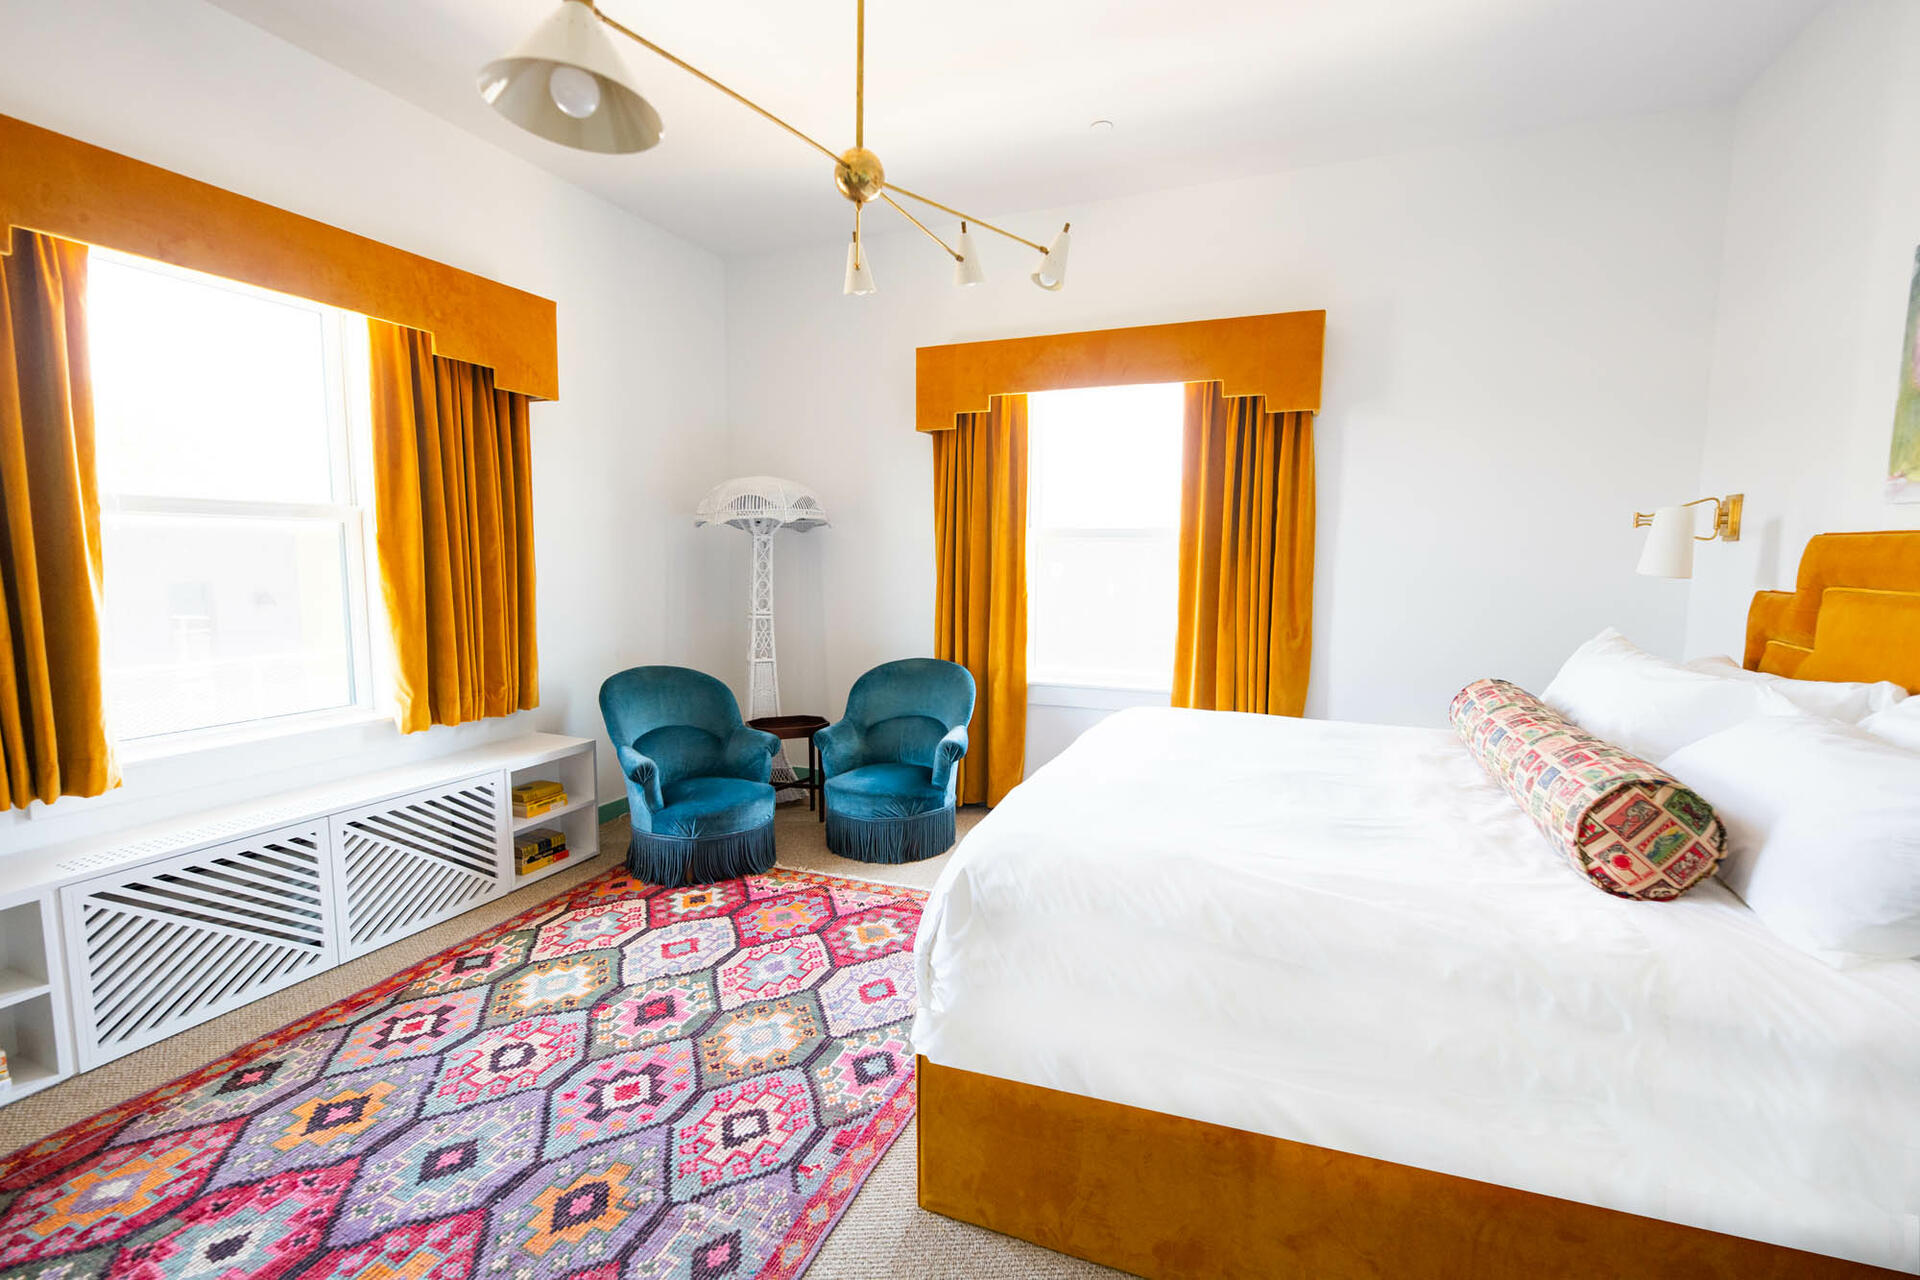 bed with orange bedframe in room with orange window curtains